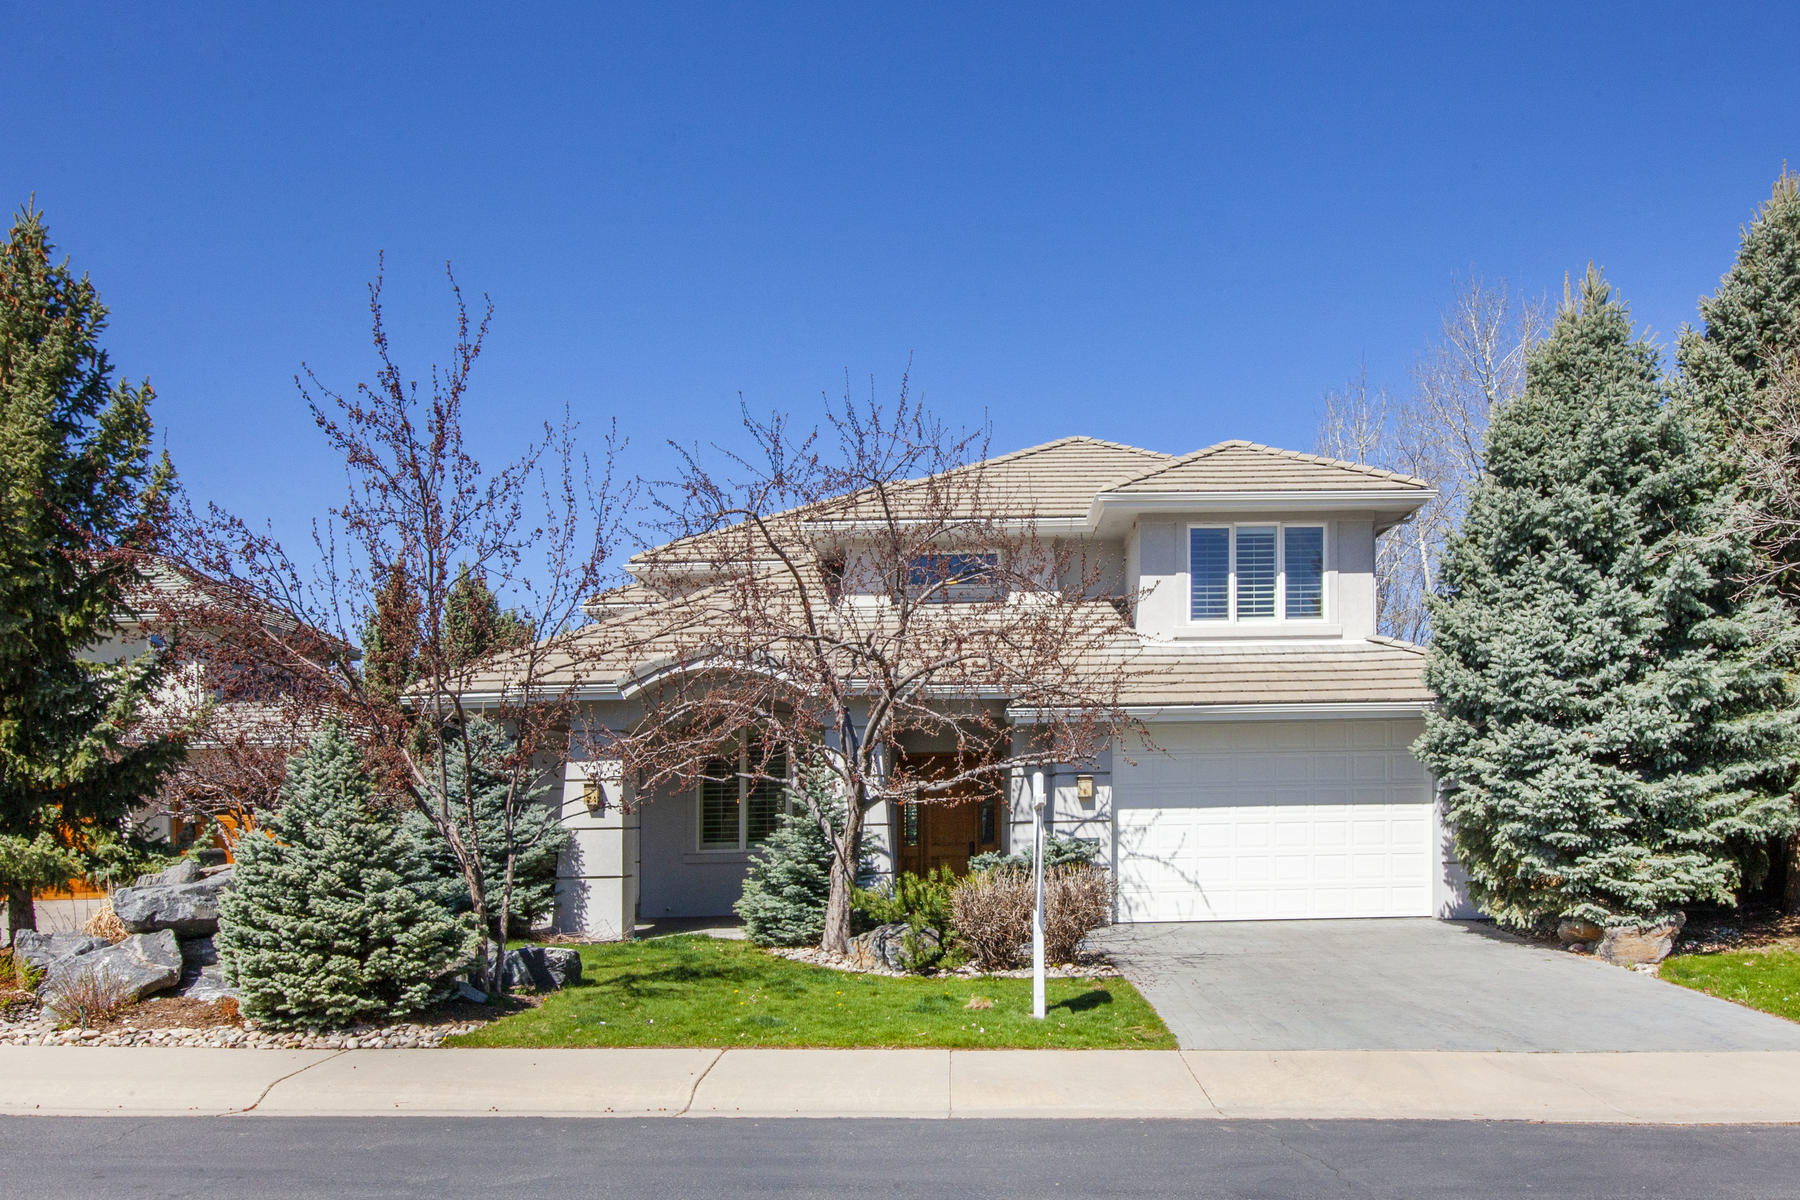 Single Family Homes for Sale at BOULDER BEAUTY CUSTOM HOME BACKING TO NORTH PALO PARK 4017 Nevis Street Boulder, Colorado 80301 United States